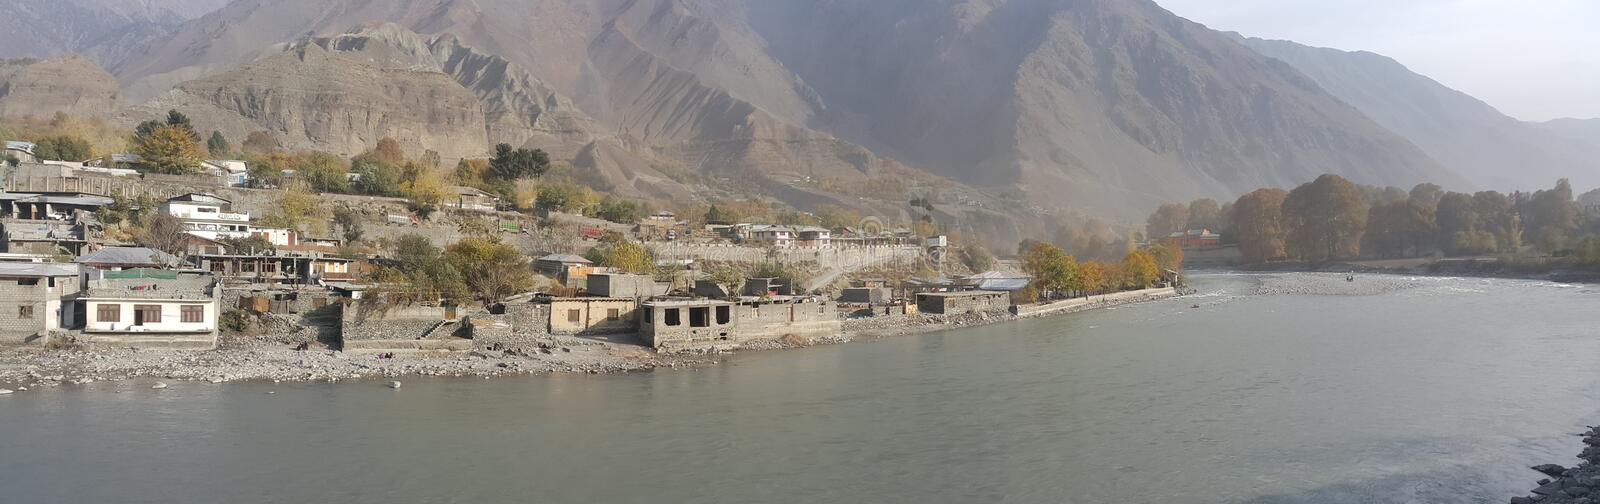 Chitral royalty free stock images